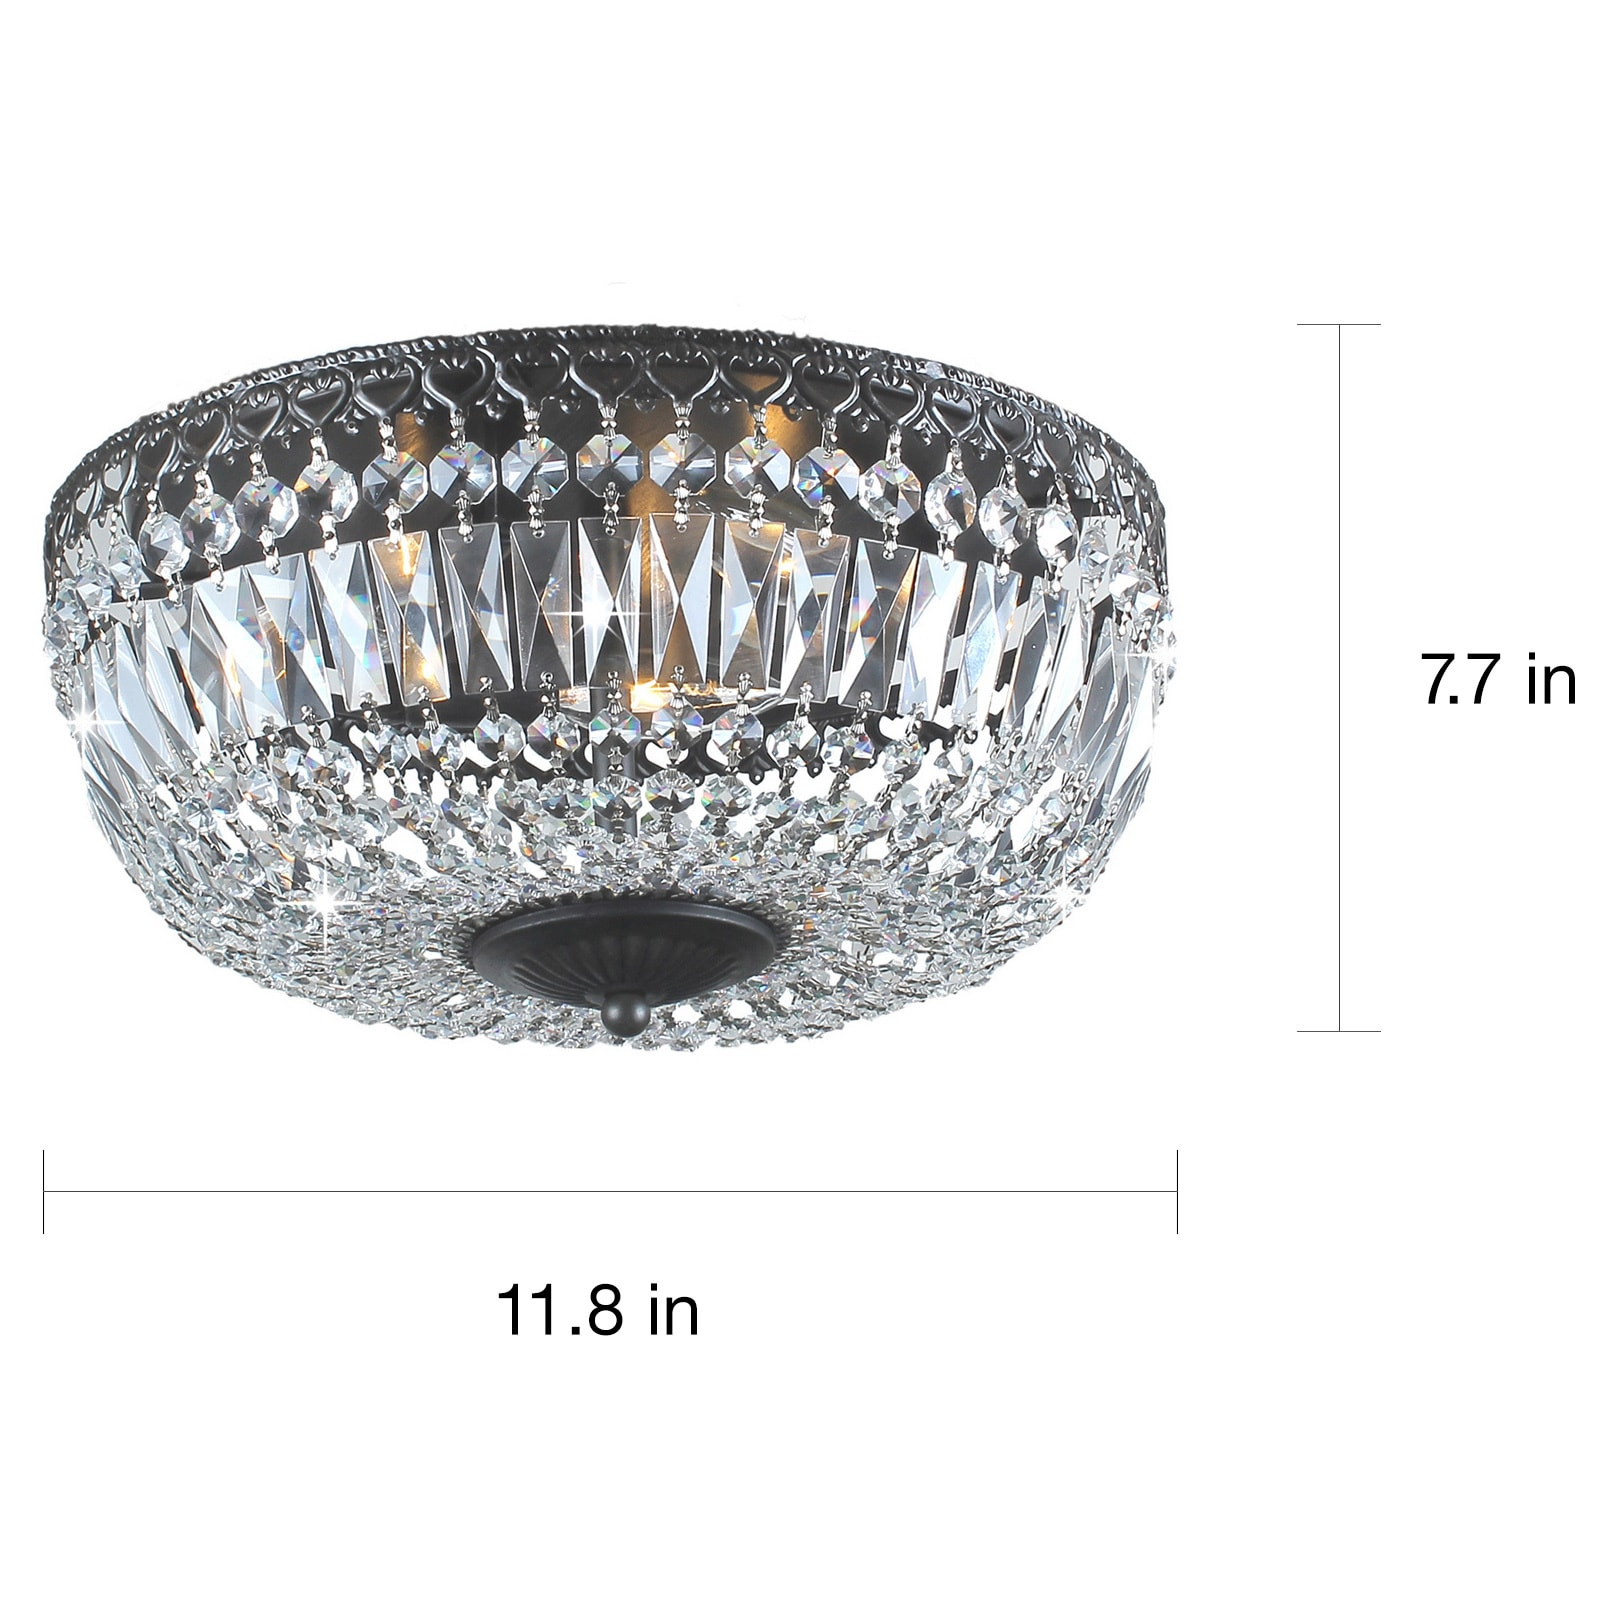 Silver orchid taylor 12 inch antique black crystal flush mount silver orchid taylor 12 inch antique black crystal flush mount chandelier free shipping today overstock 16997218 arubaitofo Image collections